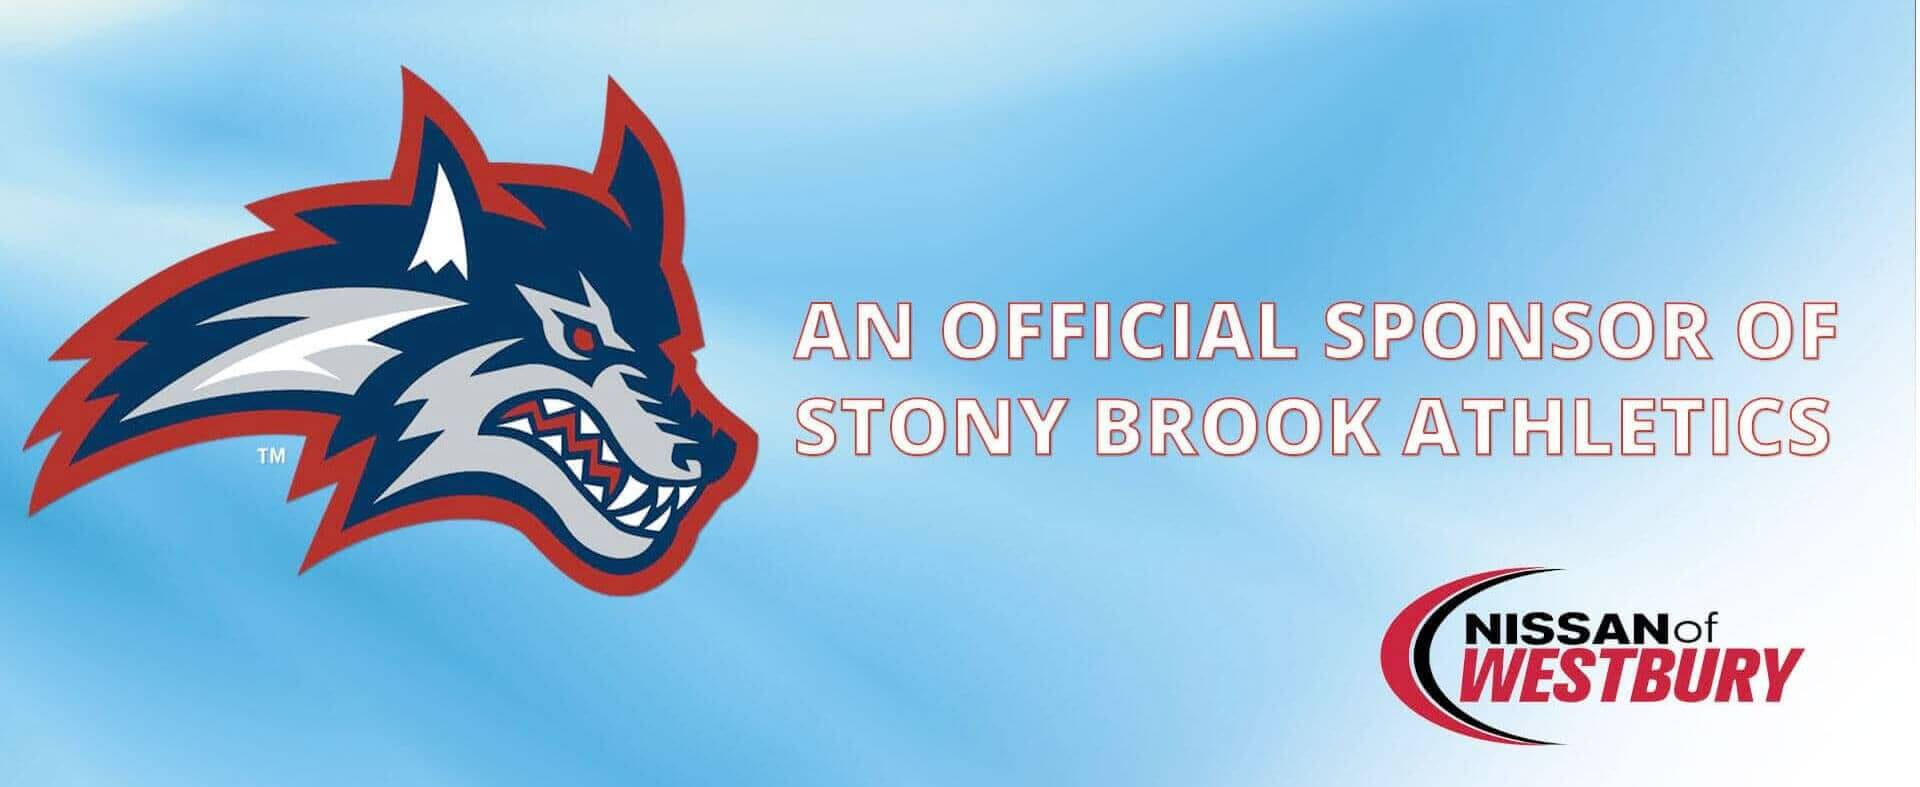 Stony Brook Athletics